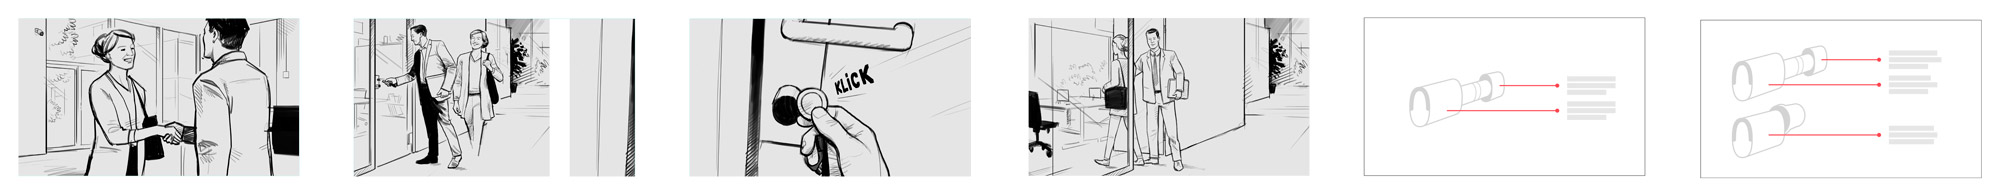 Storyboard_IP_Access